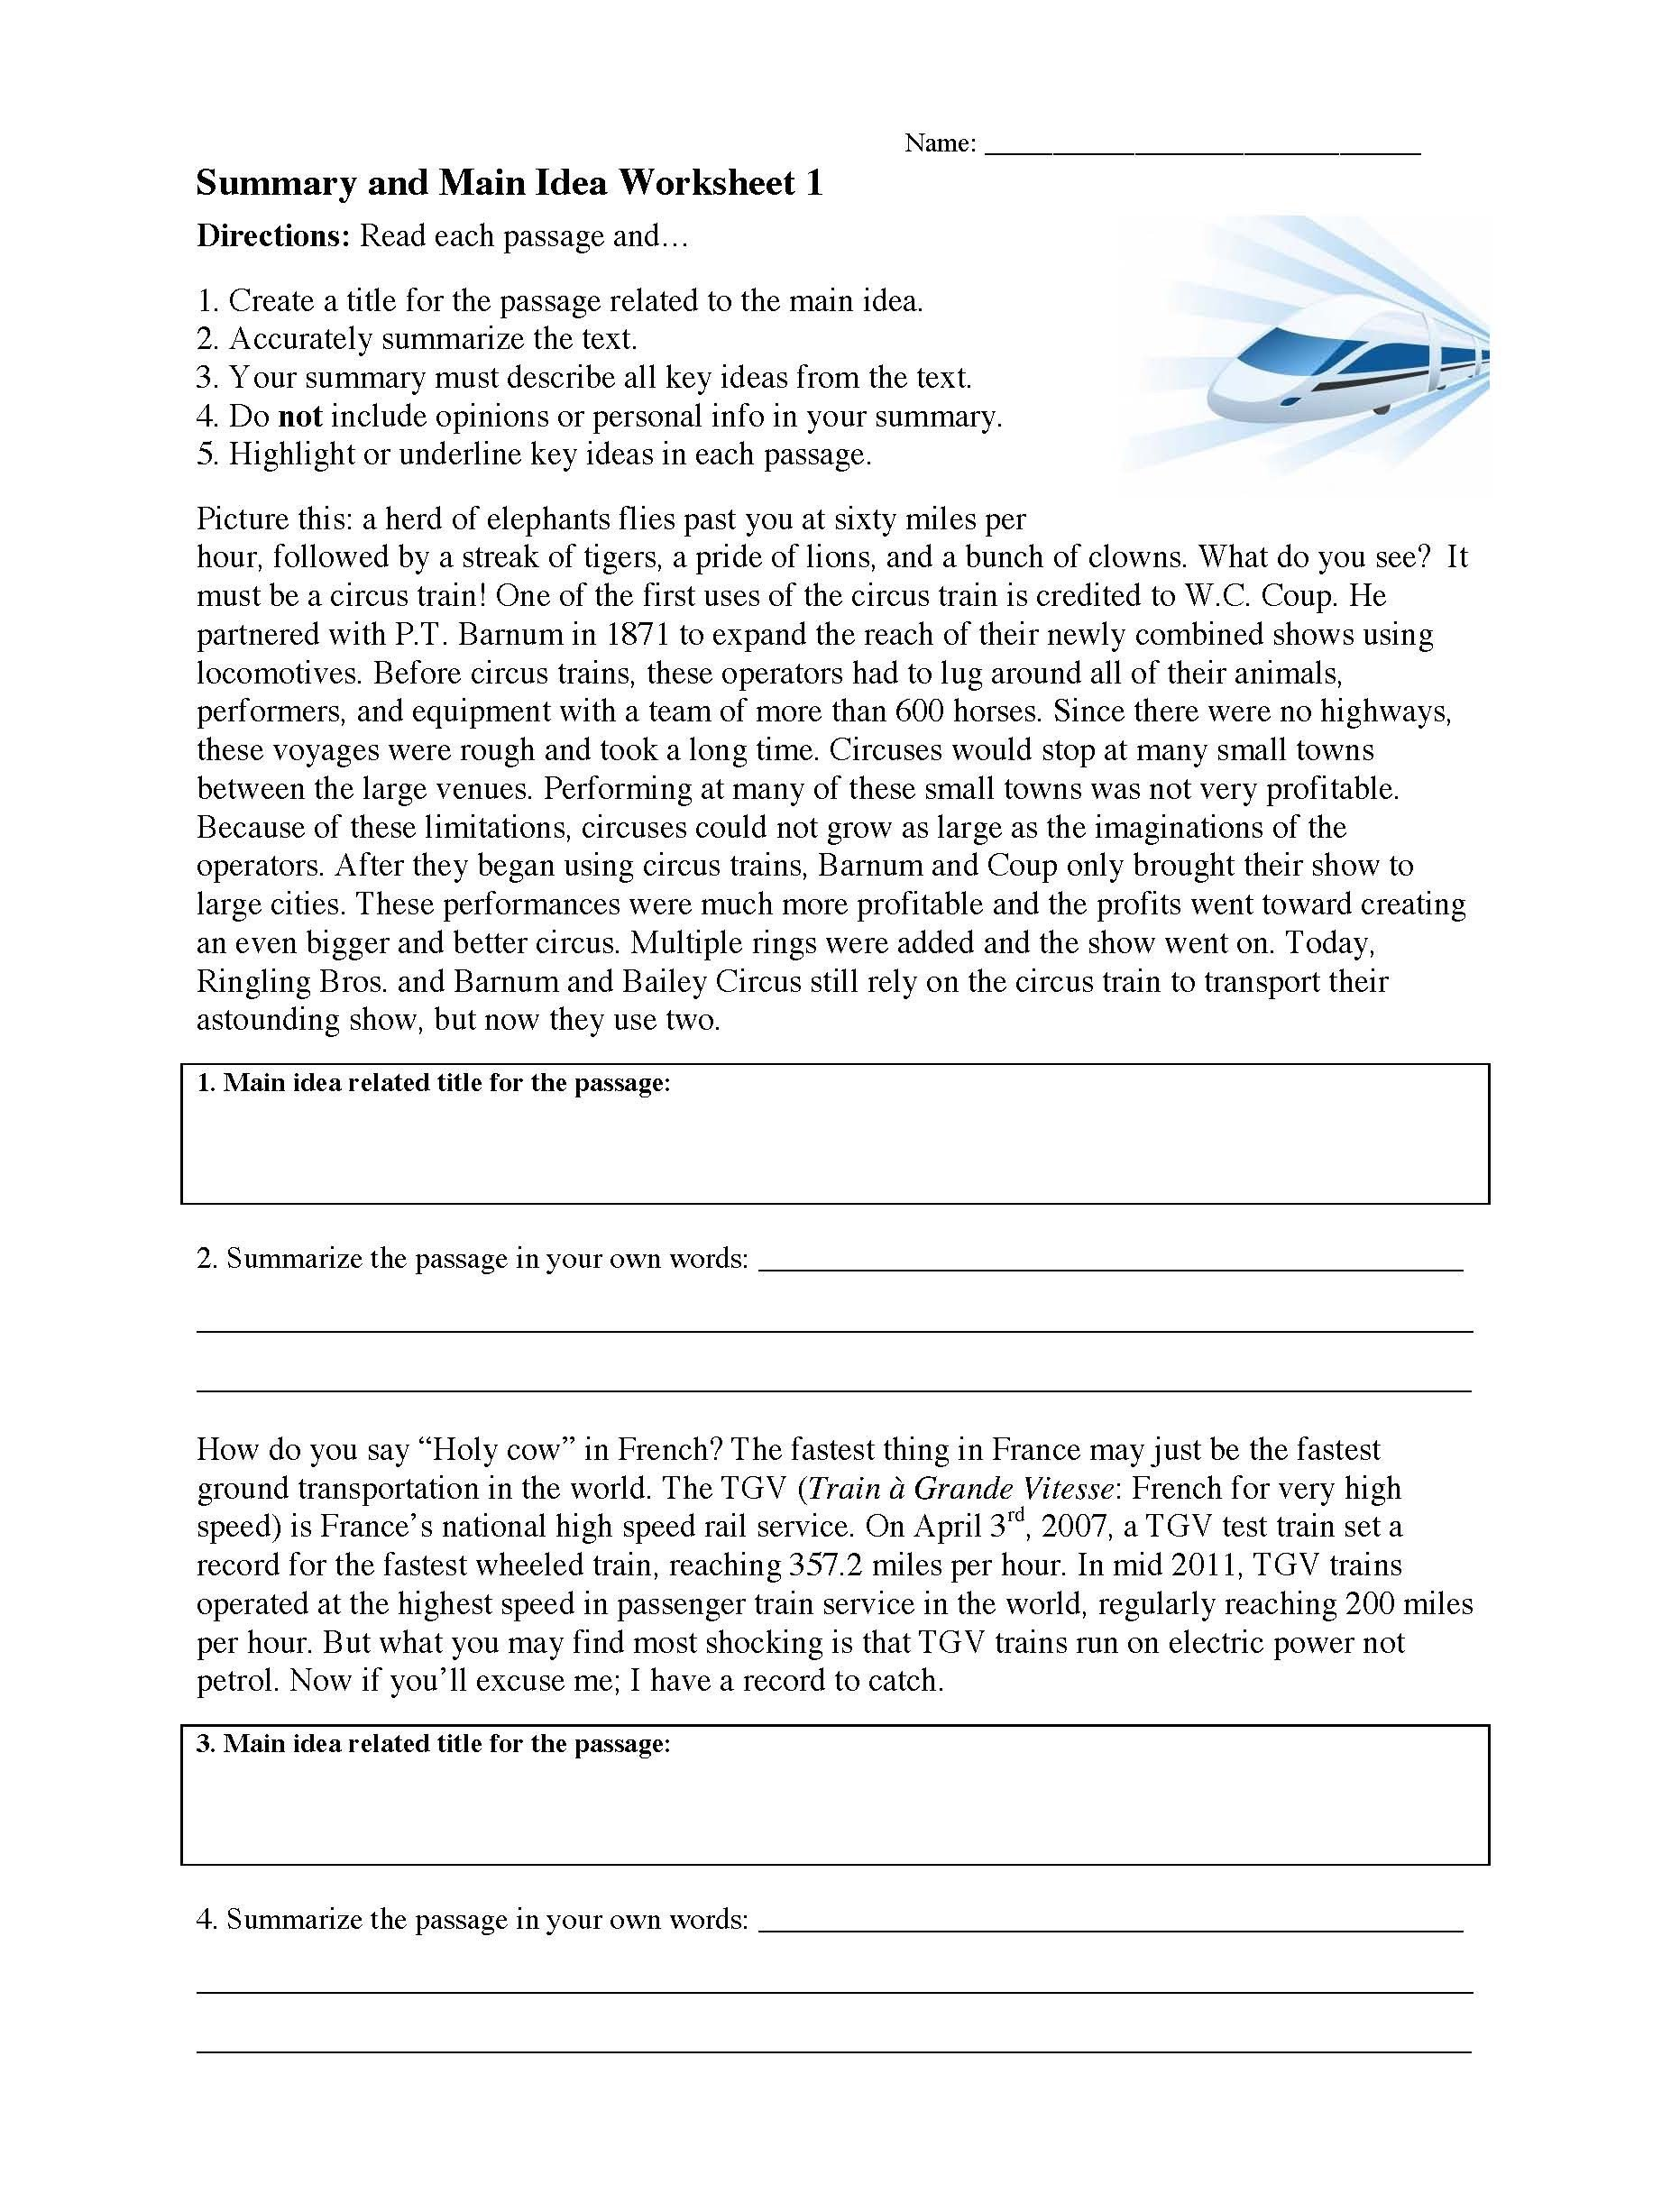 Summarizing Worksheet 4th Grade Summarizing Worksheets Learn to Summarize